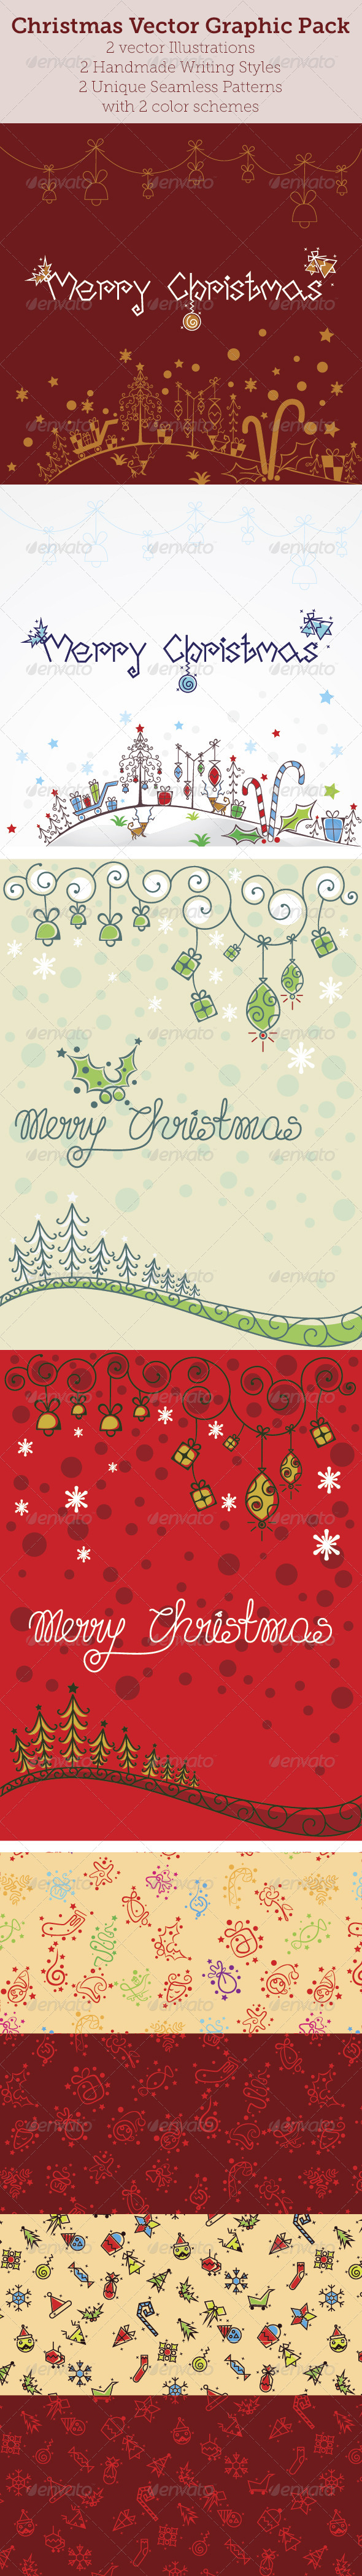 GraphicRiver Christmas Vector Graphic Pack 6391238